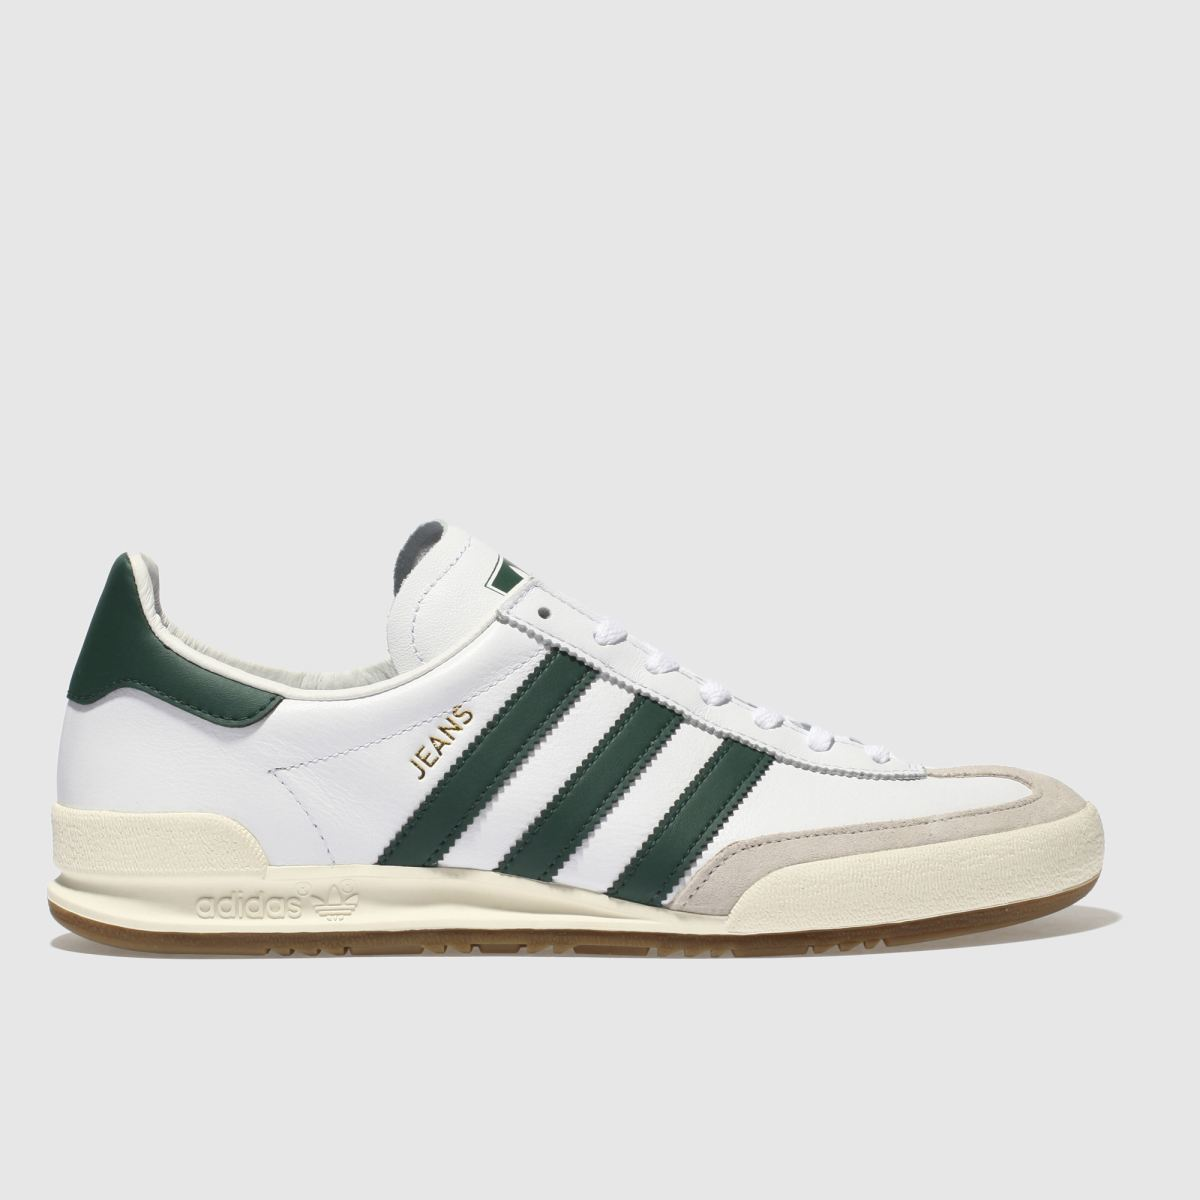 Adidas White & Green Jeans Trainers